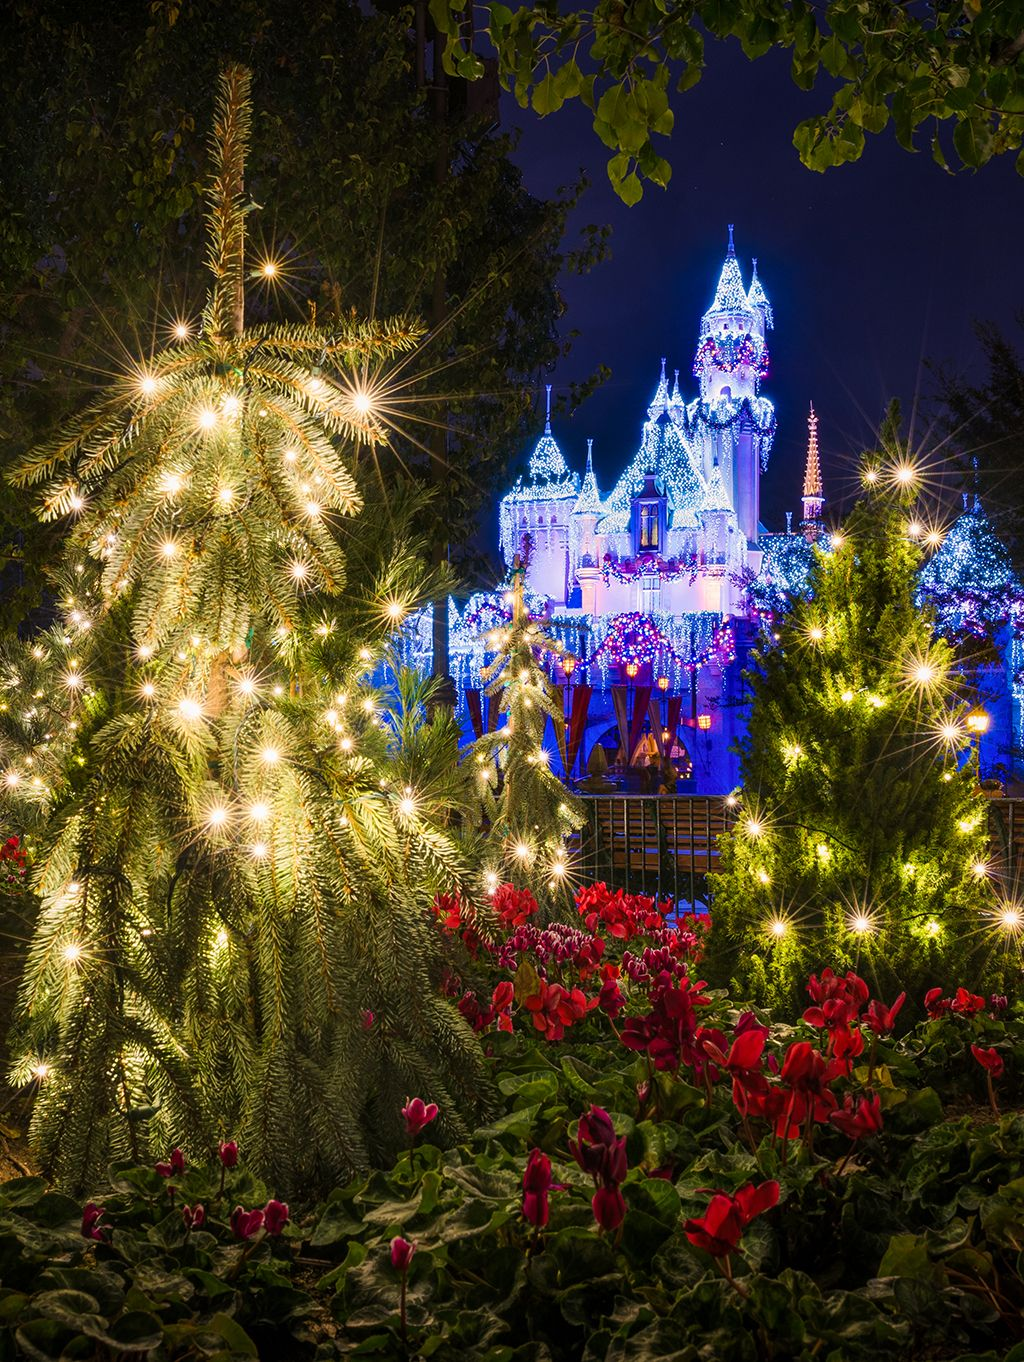 the christmas season at disneyland and disney california adventure started november 10 2016 and if you read our festival of holidays post you already kn